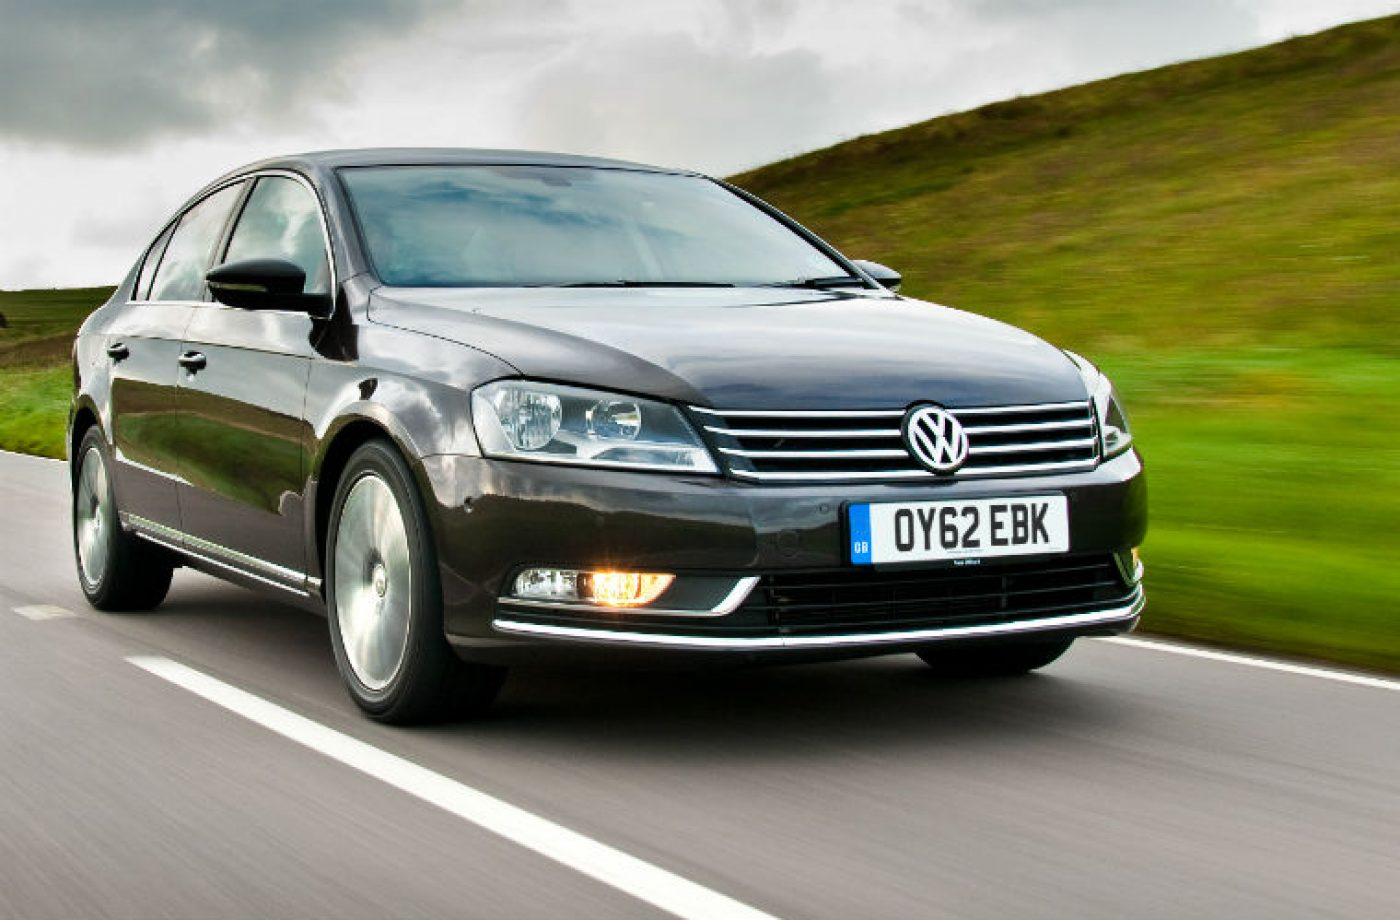 Passat 2.0 TDI cuts out after five seconds – can you solve this problem job?